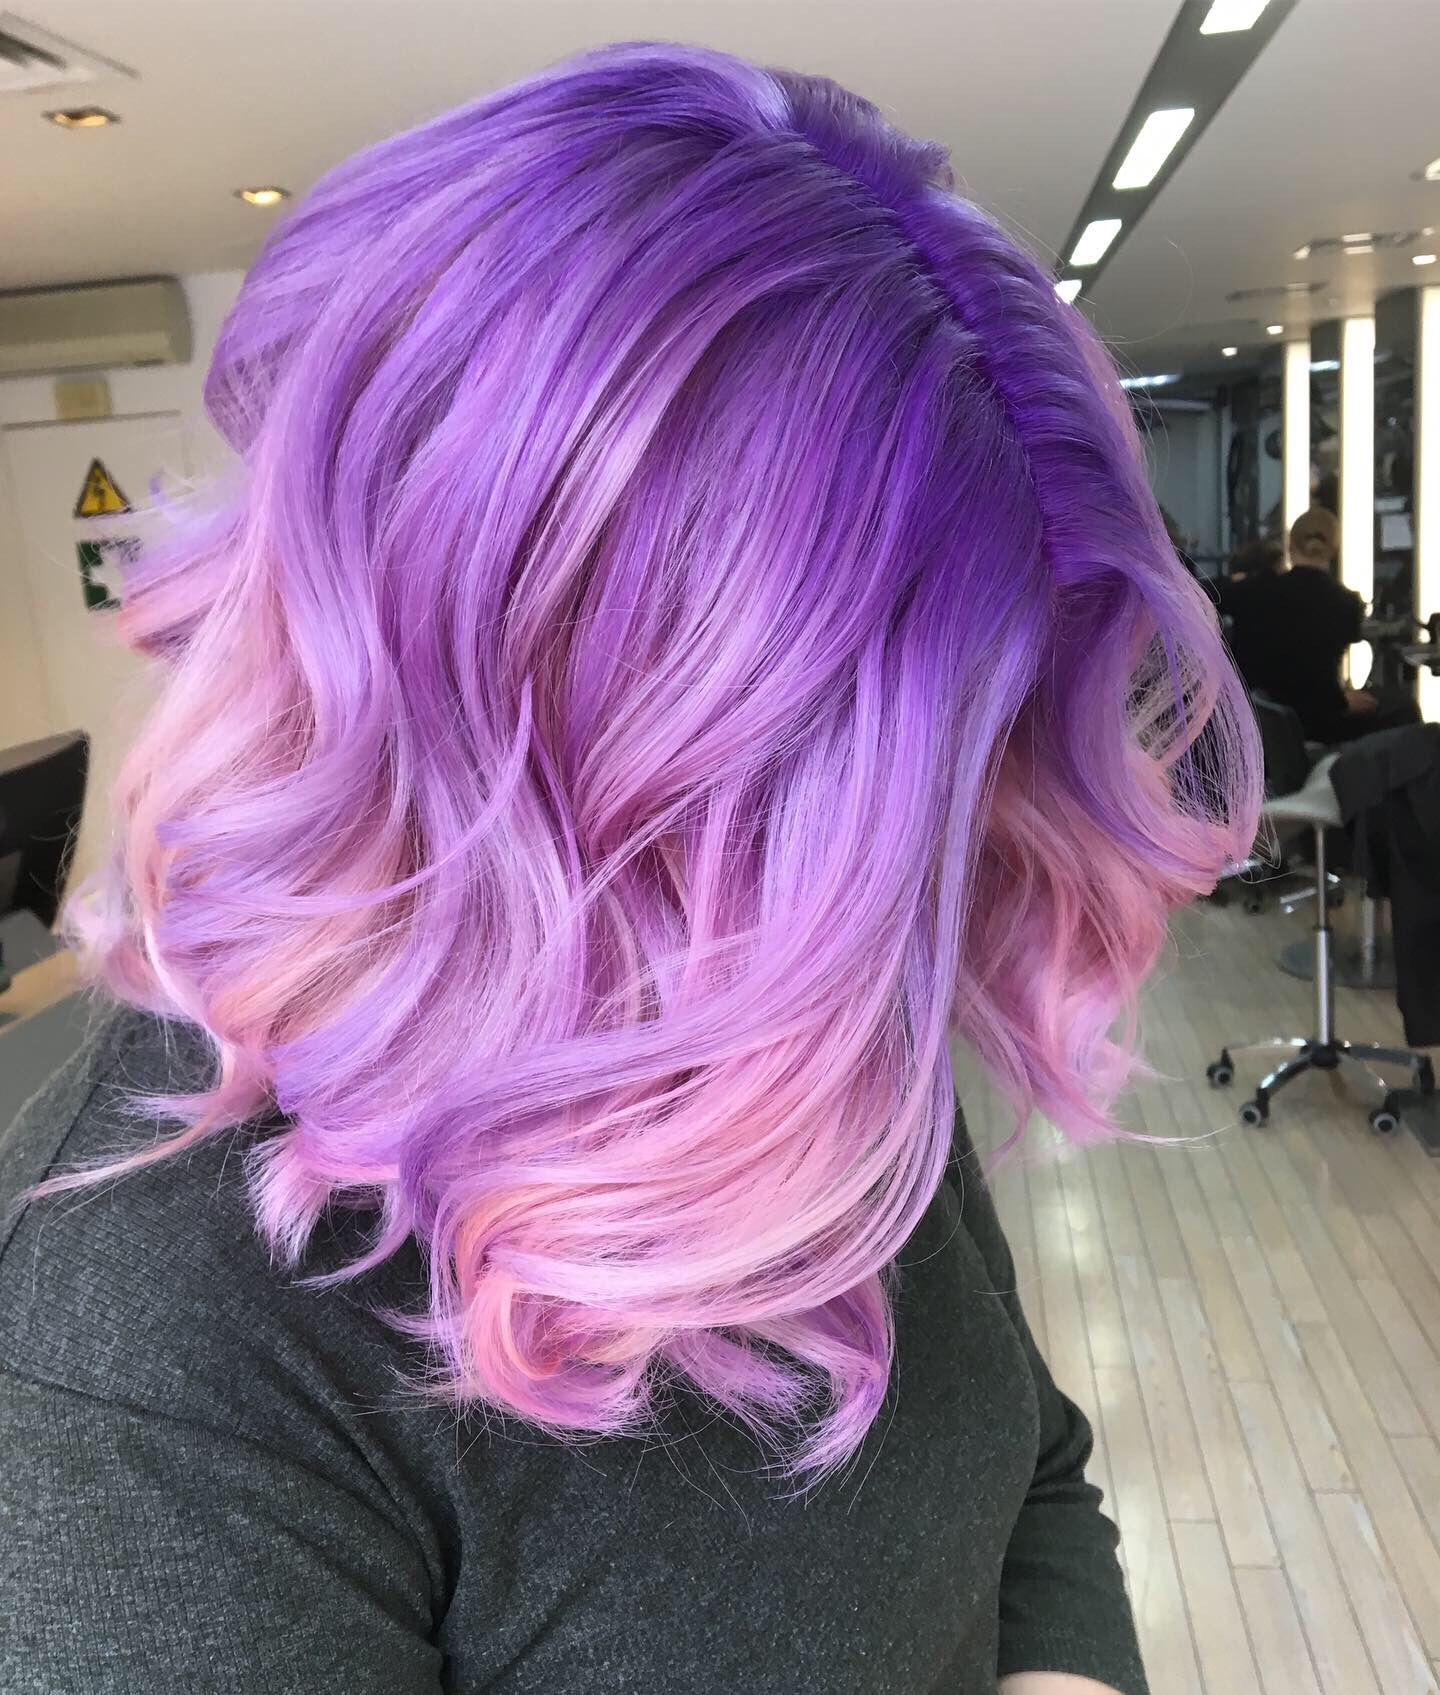 Purple Ombre Hair Beauty Fantasy Unicorn Purple Violet Red Cherry Pink Yellow Bright Hair Colour Color Hair Color Pastel Purple Ombre Hair Mermaid Hair Color